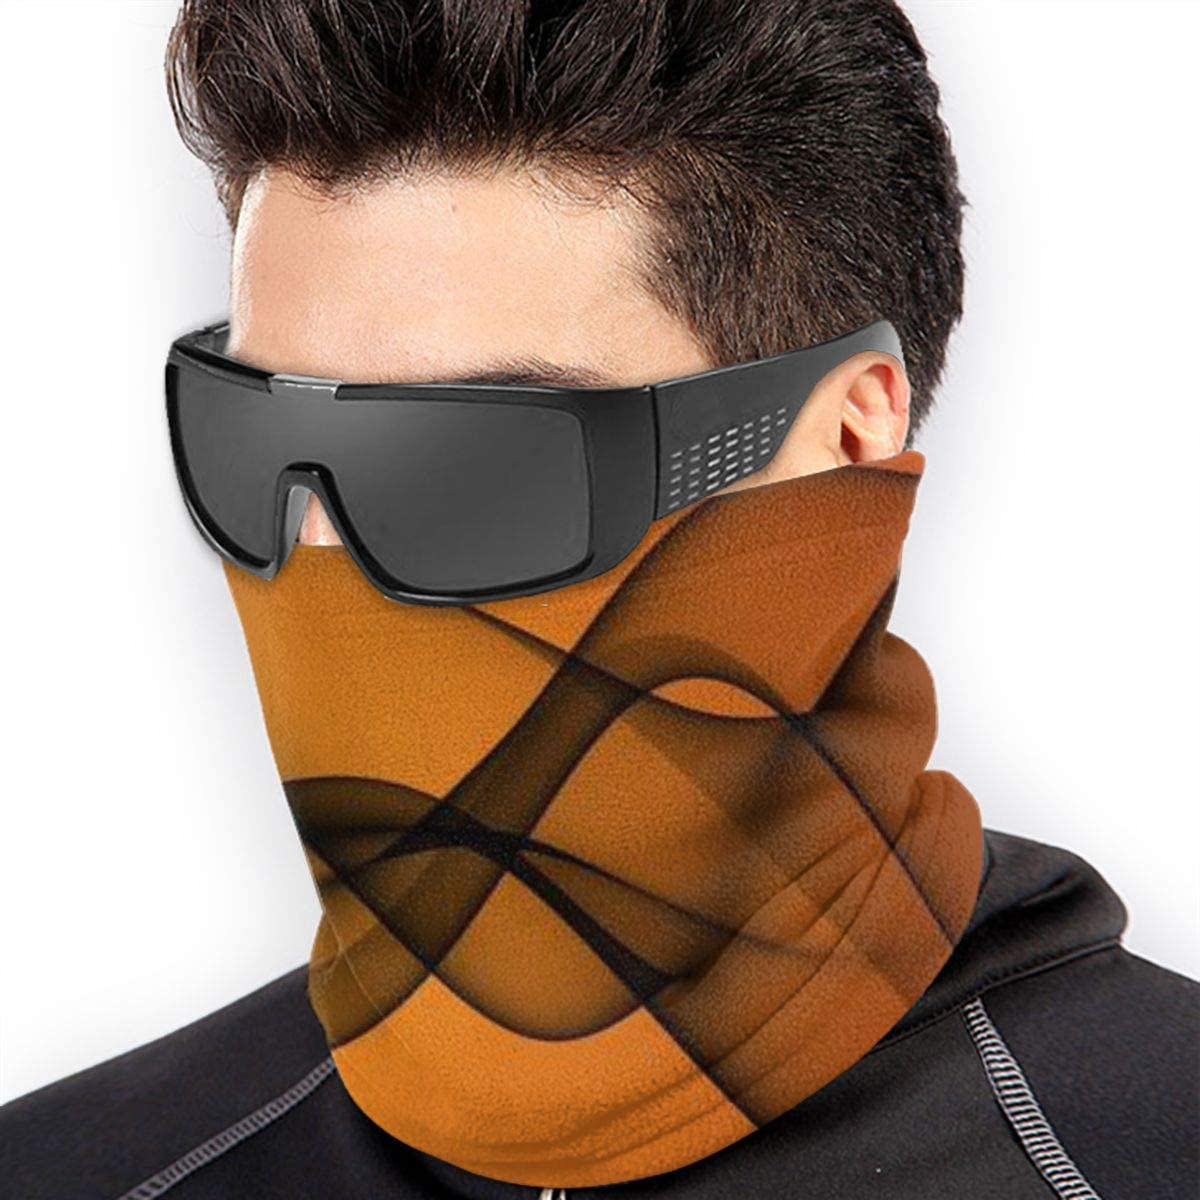 Thick Dustproof Breathable Neck Cover MasakoJMassie Mens Warm Windproof Face Cover